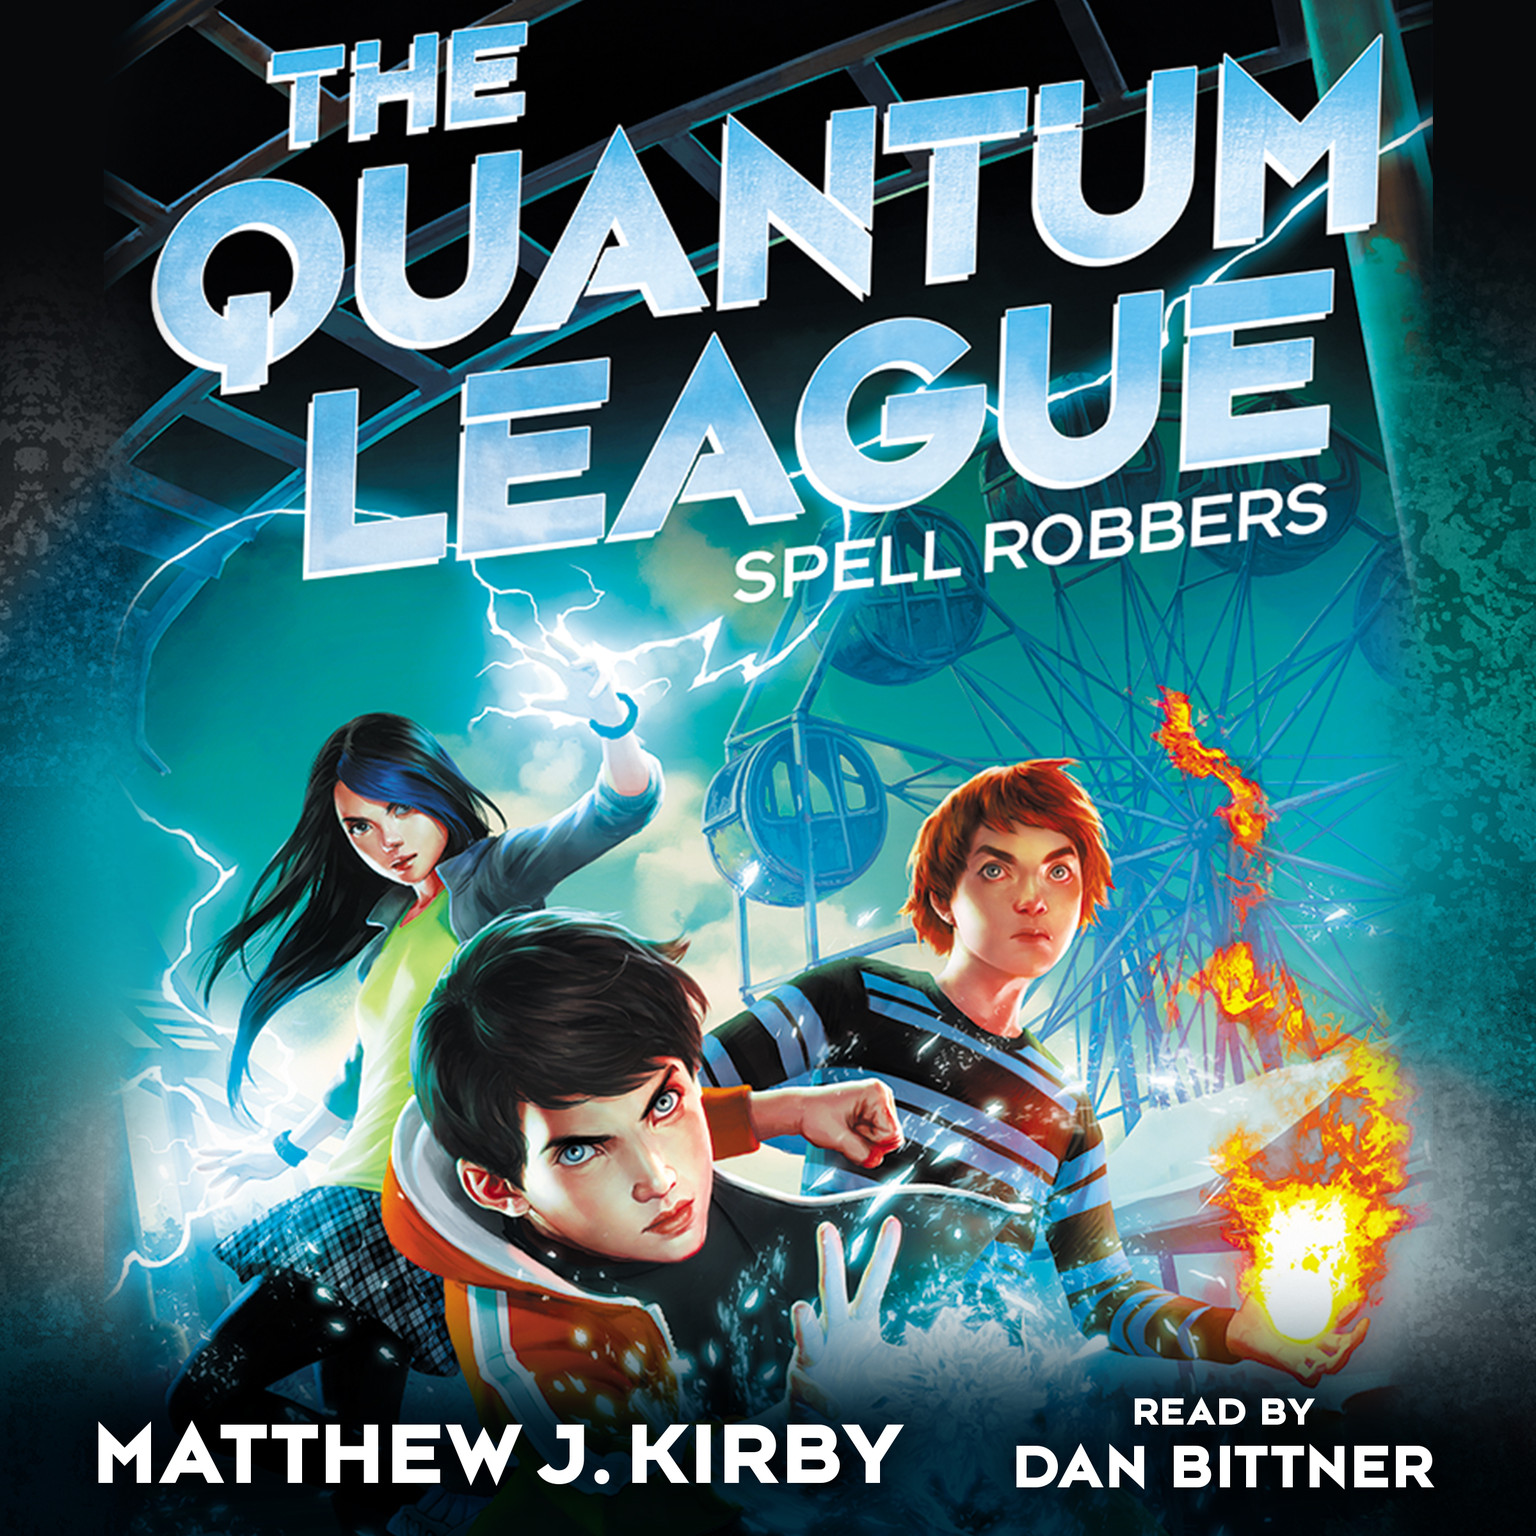 Printable Spell Robbers Audiobook Cover Art